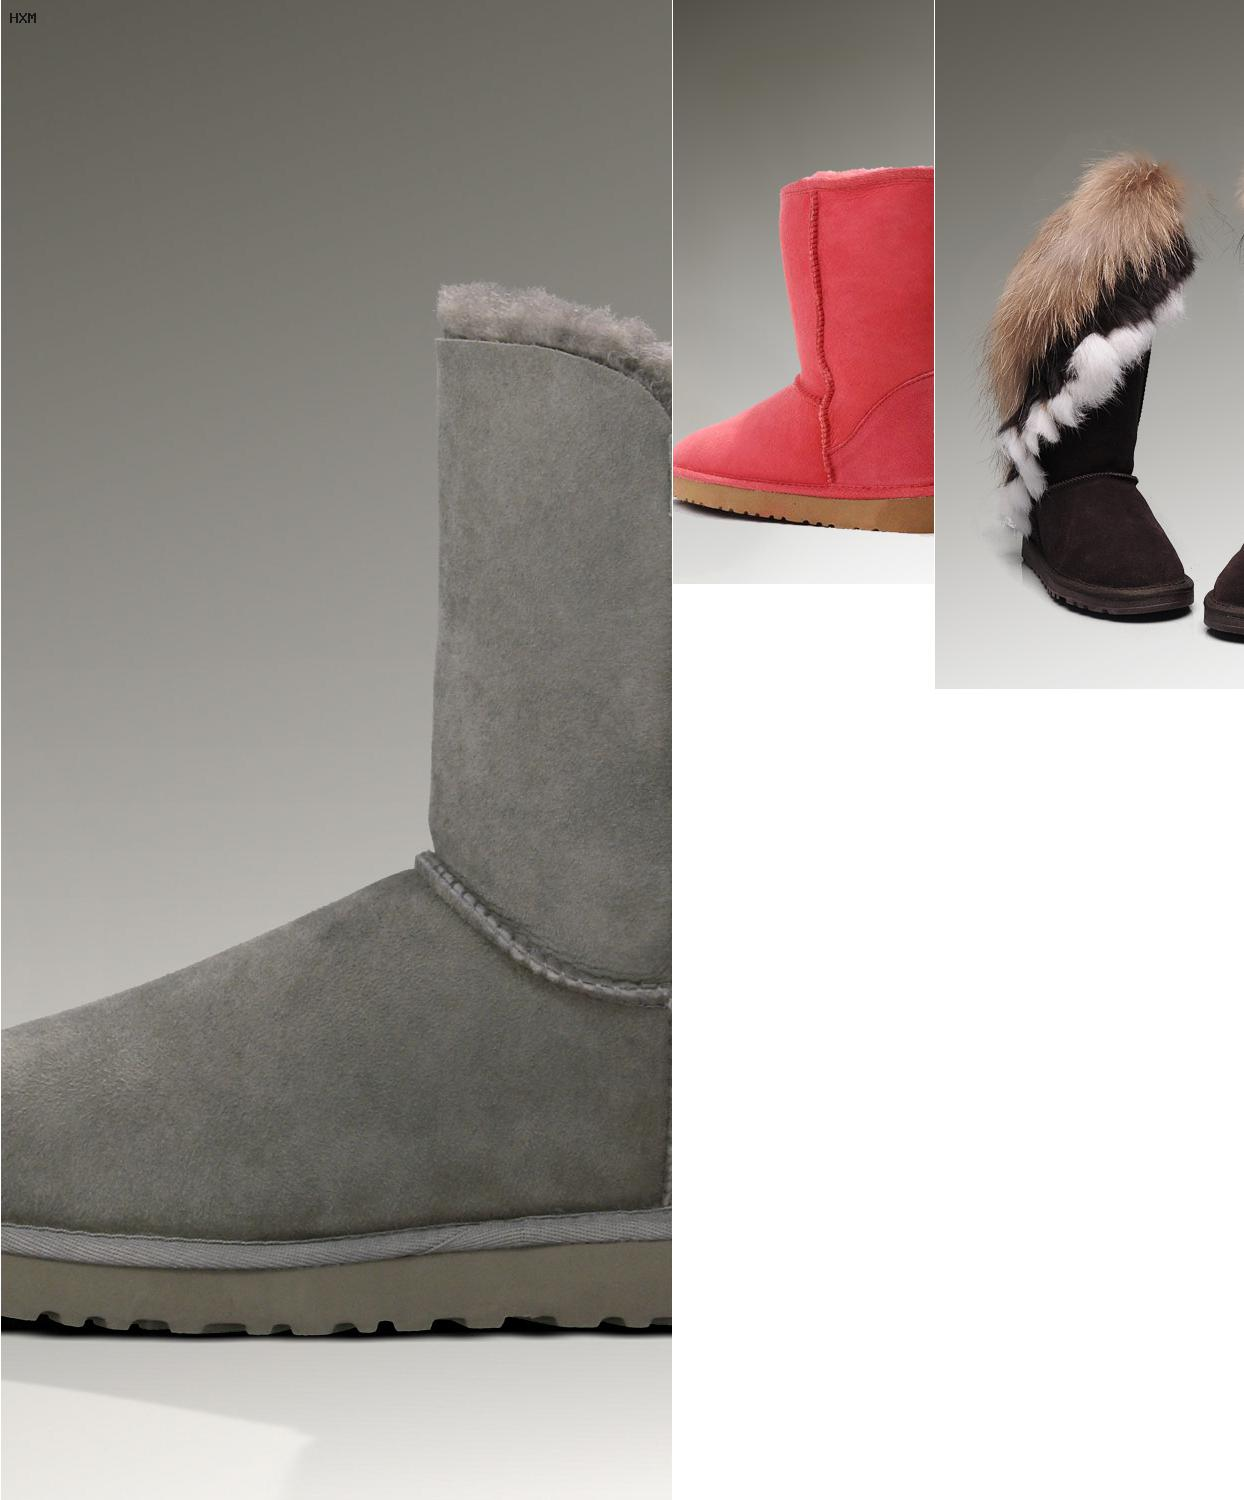 ugg maattabel kind